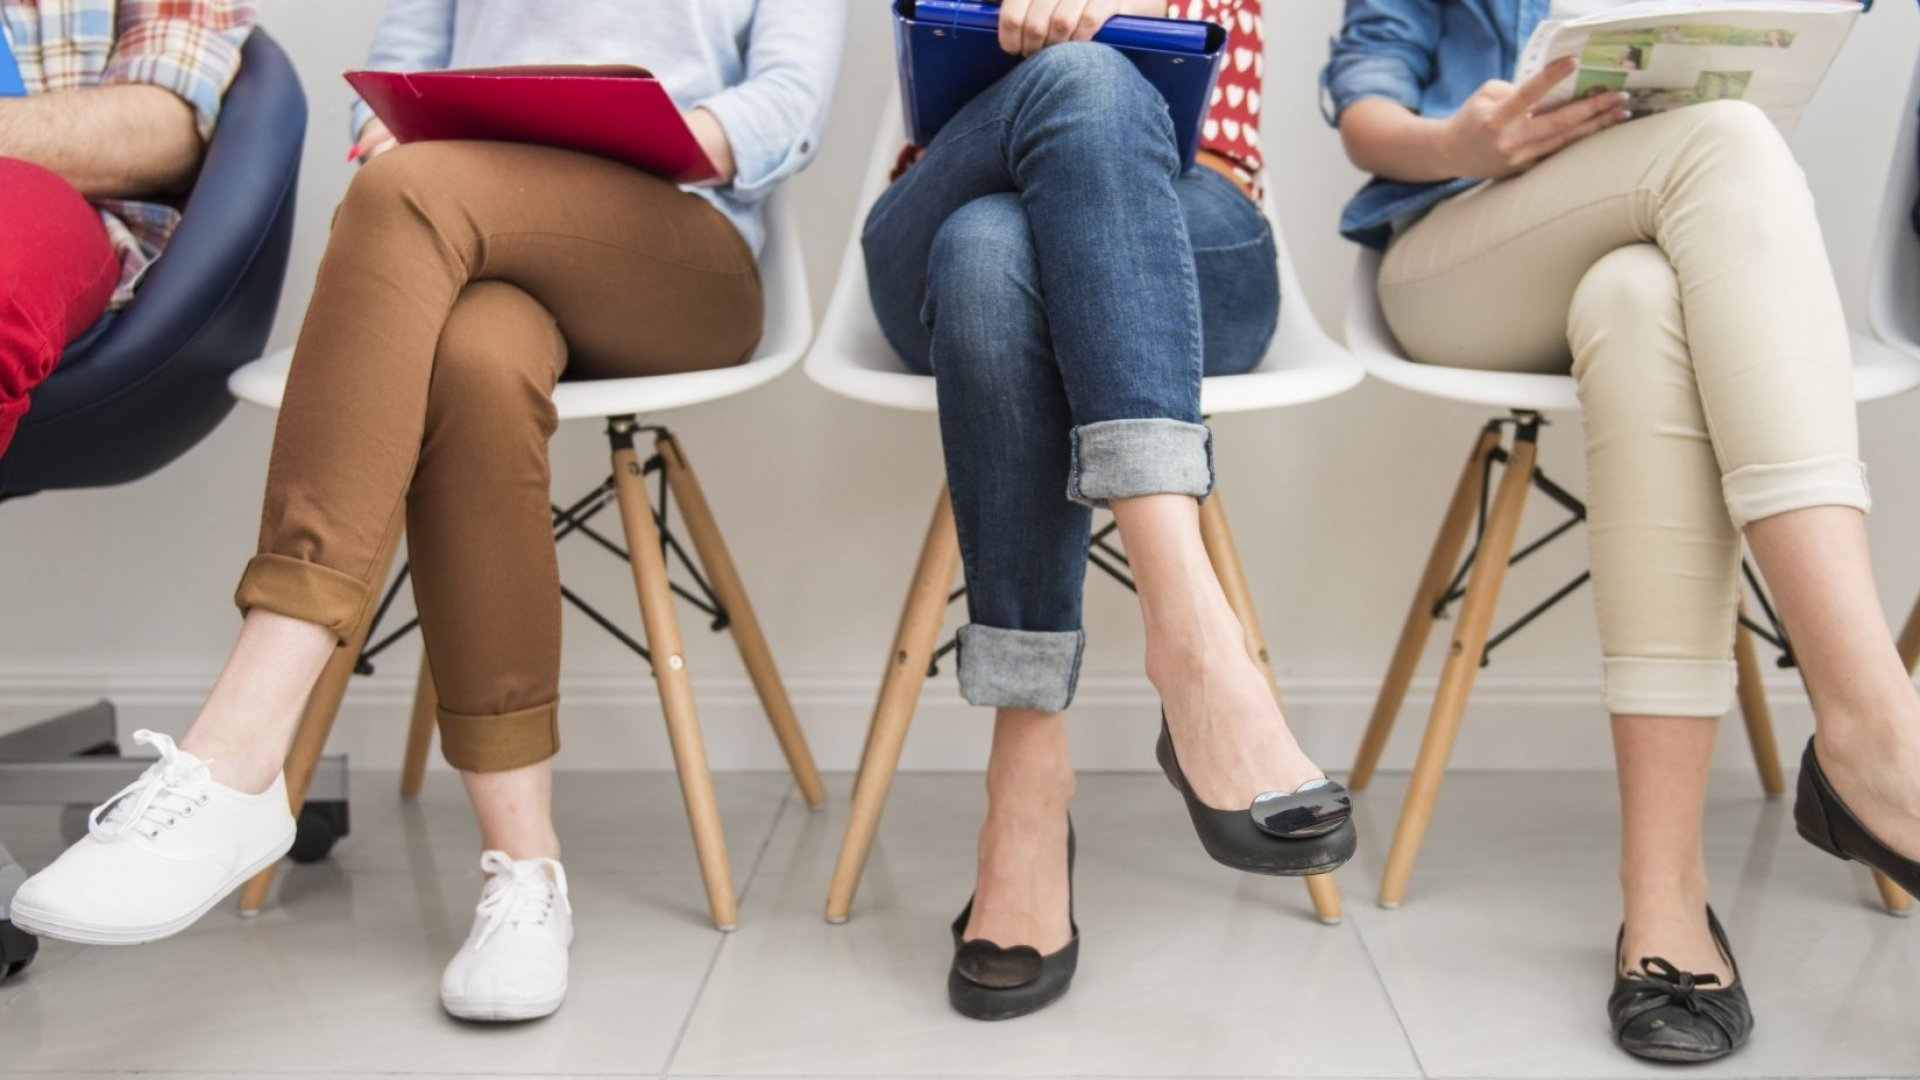 To Hire The Perfect Person For The Job, You Shouldn'tActuallyTalk About The Role